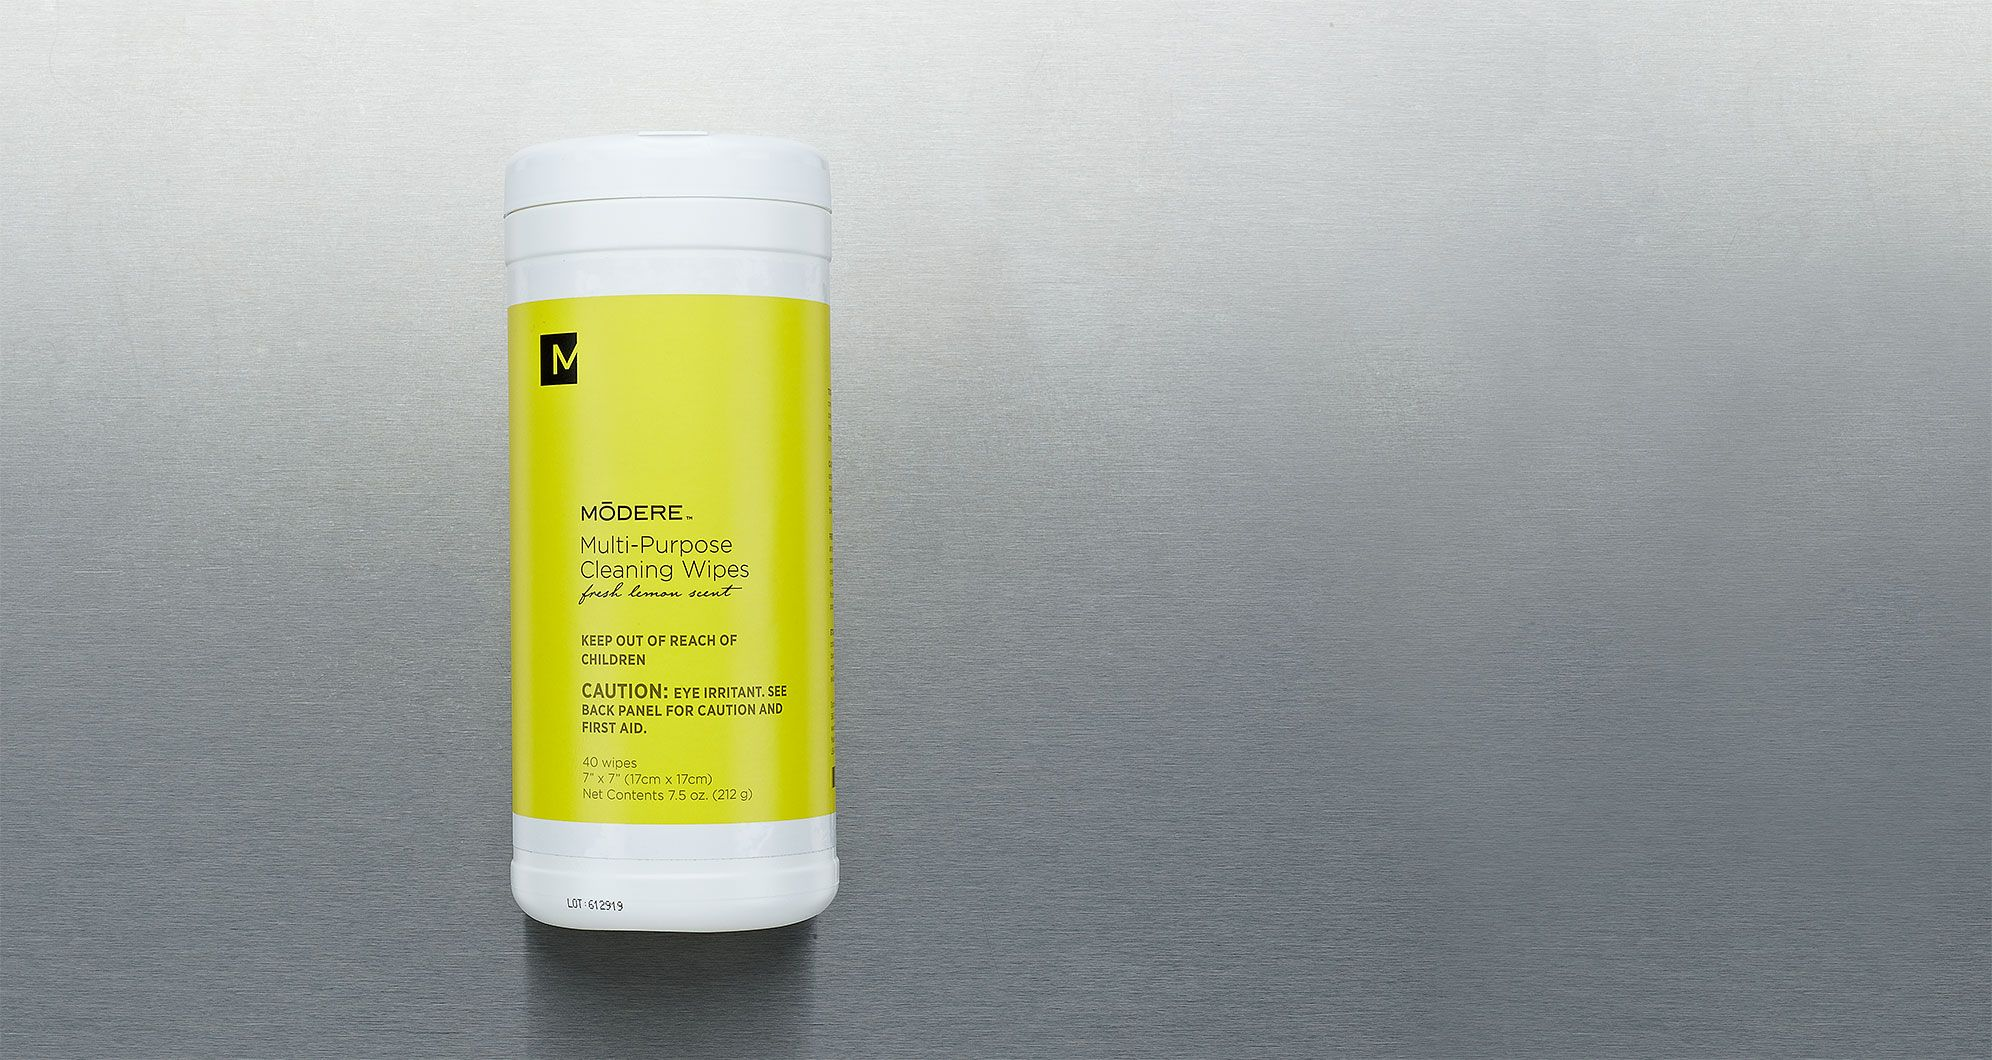 - Multi-Purpose Cleaning Wipes by Modere - Life is Messy. Wipe it up with the Multi-Purpose Cleaning Wipes by Modere.